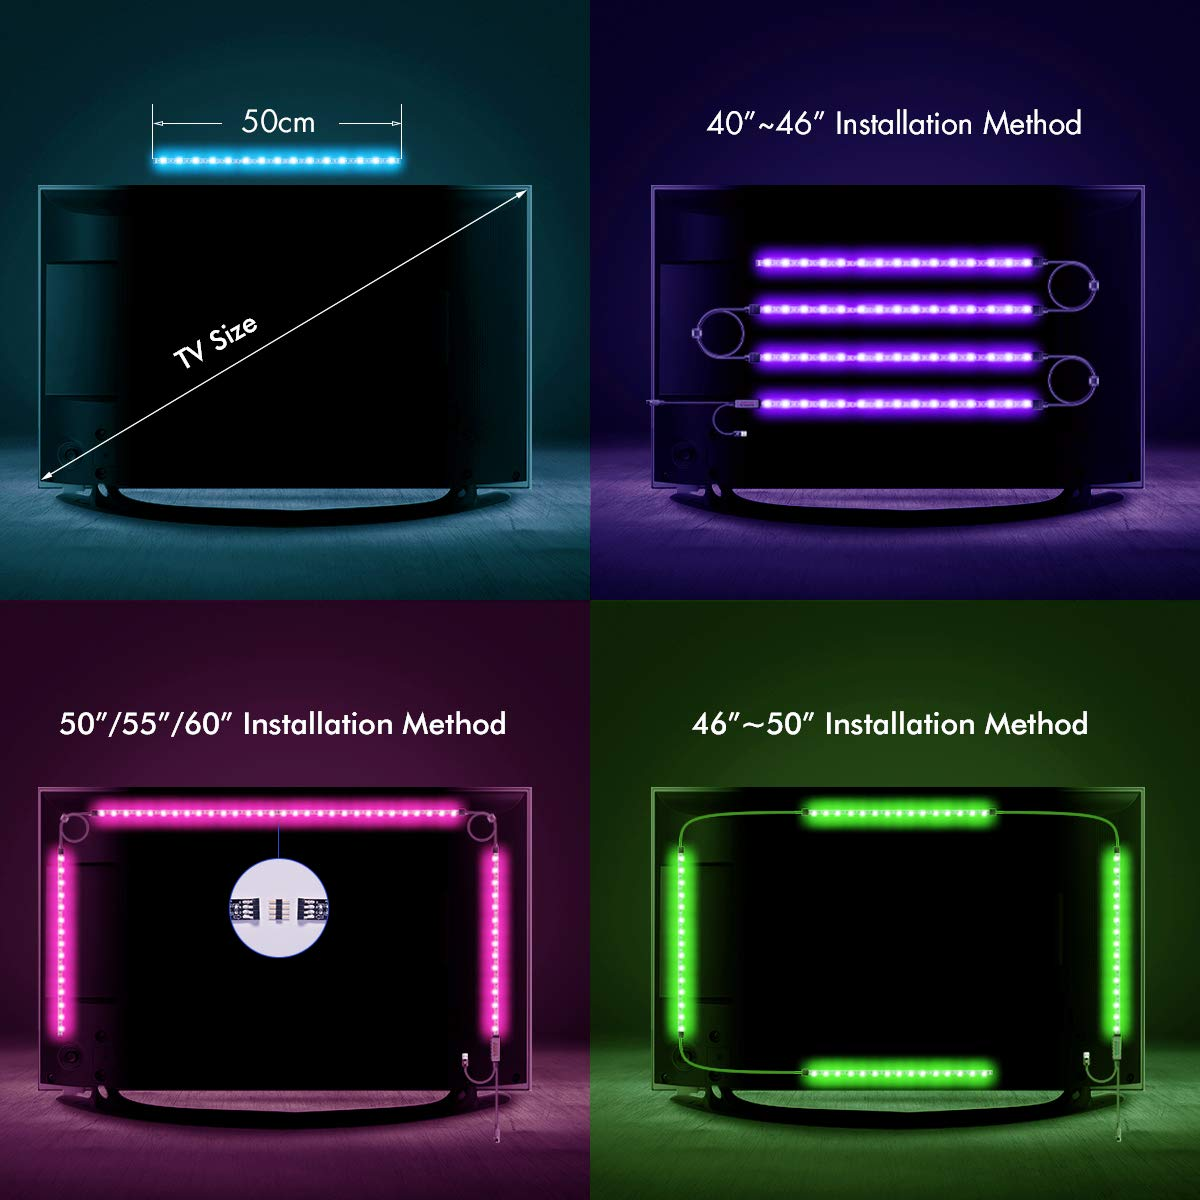 LED Strip Lights, Sunix 6.6ft RGB Bias Lighting for 40-60 inch HDTV,USB LED TV Backlight Kit with Remote - 20 Colors and 4 Dynamic Mode (4pcs x 50cm LED Strips) [Energy Class A+] by Sunix (Image #4)